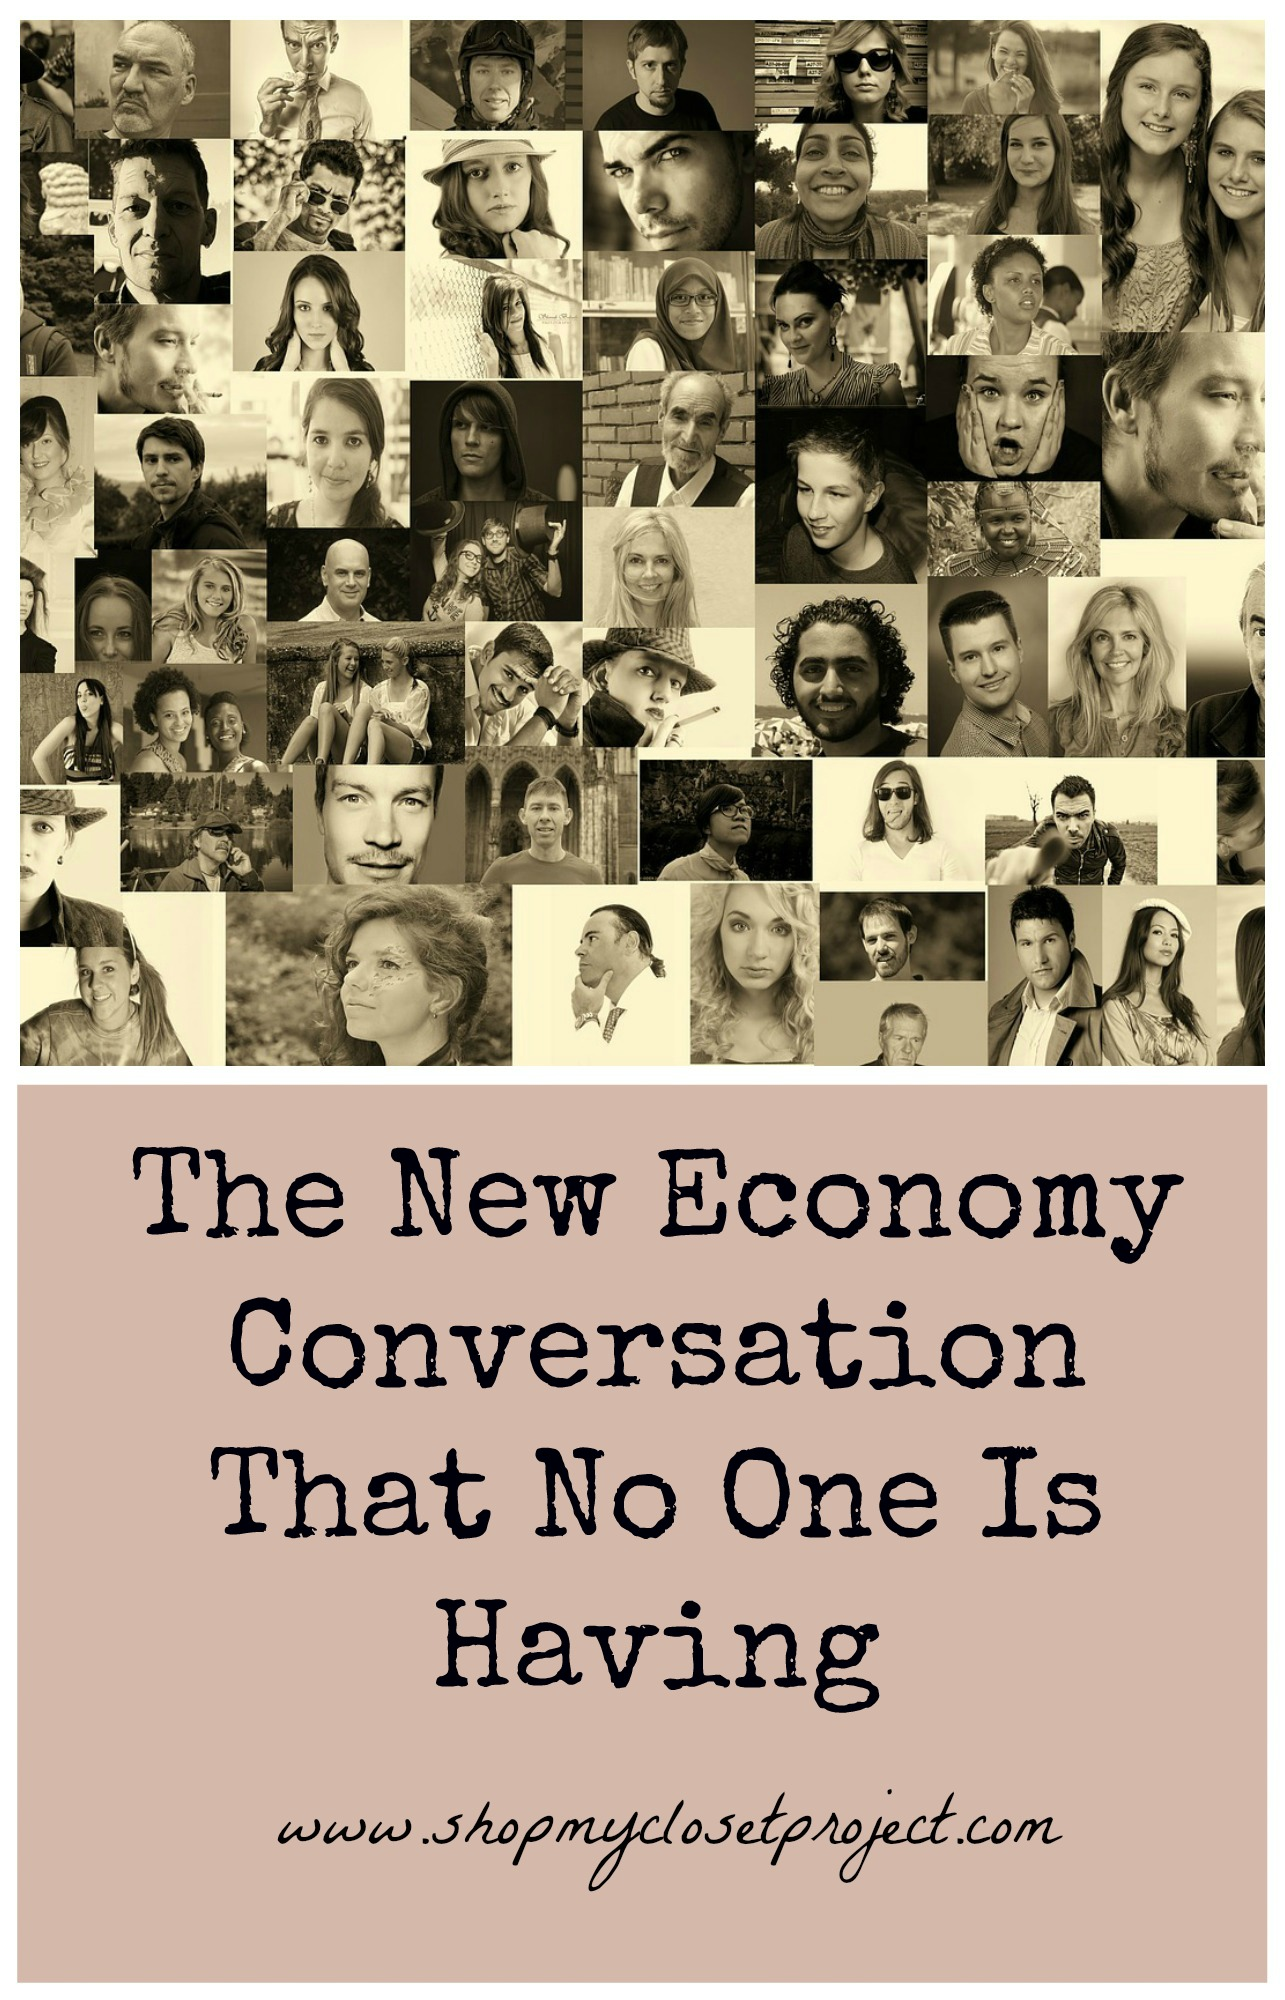 The New Economy Conversation That No One Is Having